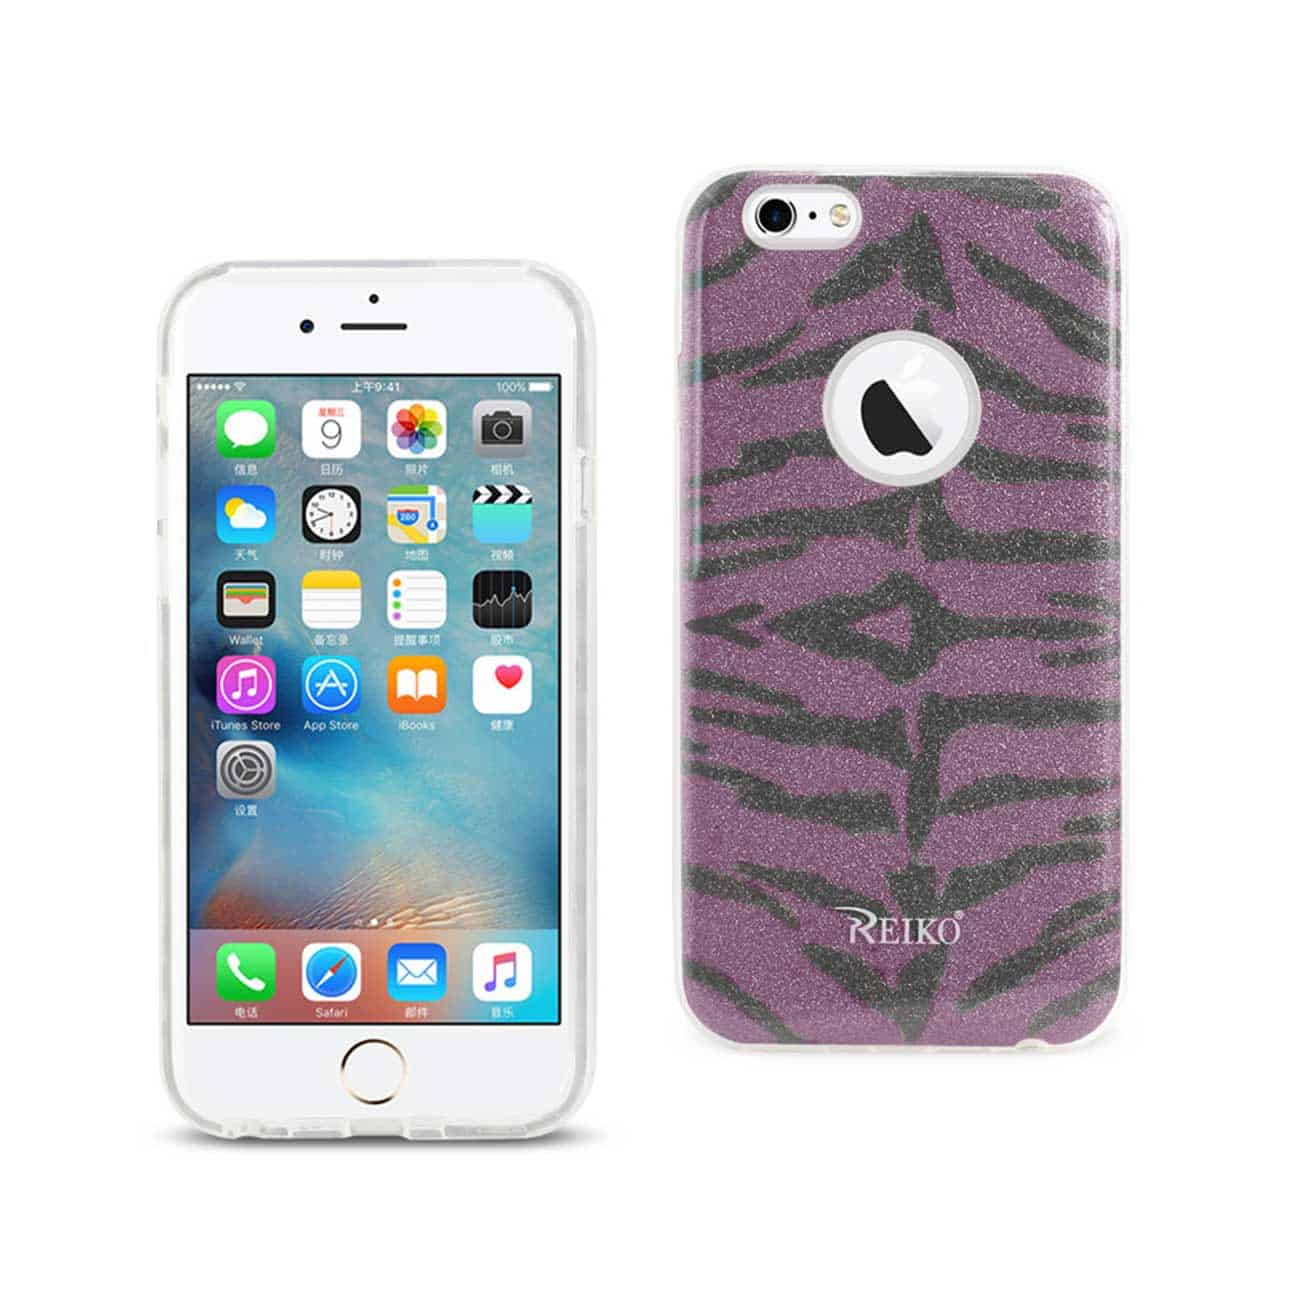 IPHONE 6/ 6S SHINE GLITTER SHIMMER TIGER STRIPE HYBRID CASE IN PURPLE